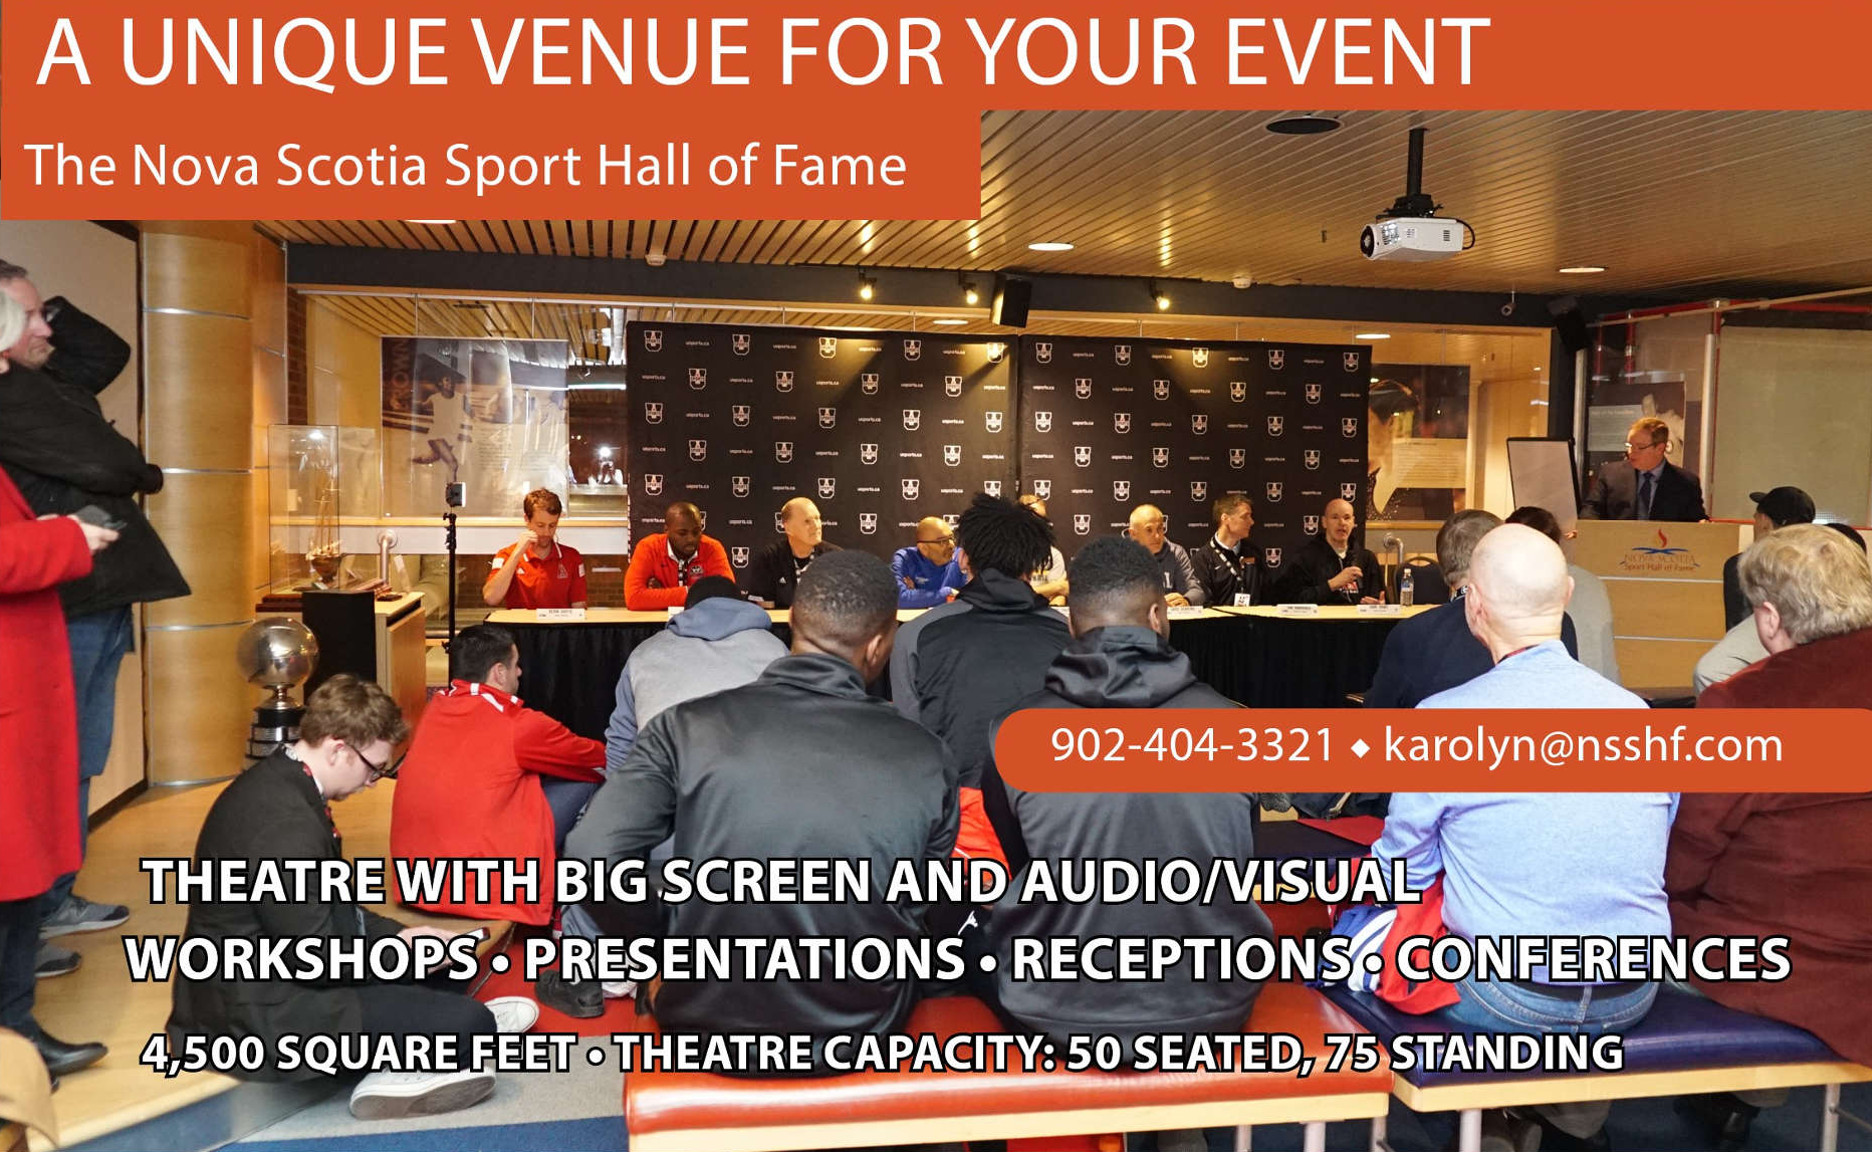 A unique venue for your event. Theatre with big screen and audio/visual, workshops, presentations, receptions, conferences. 4500 square feet, theatre capacity: 50 seated, 75 standing